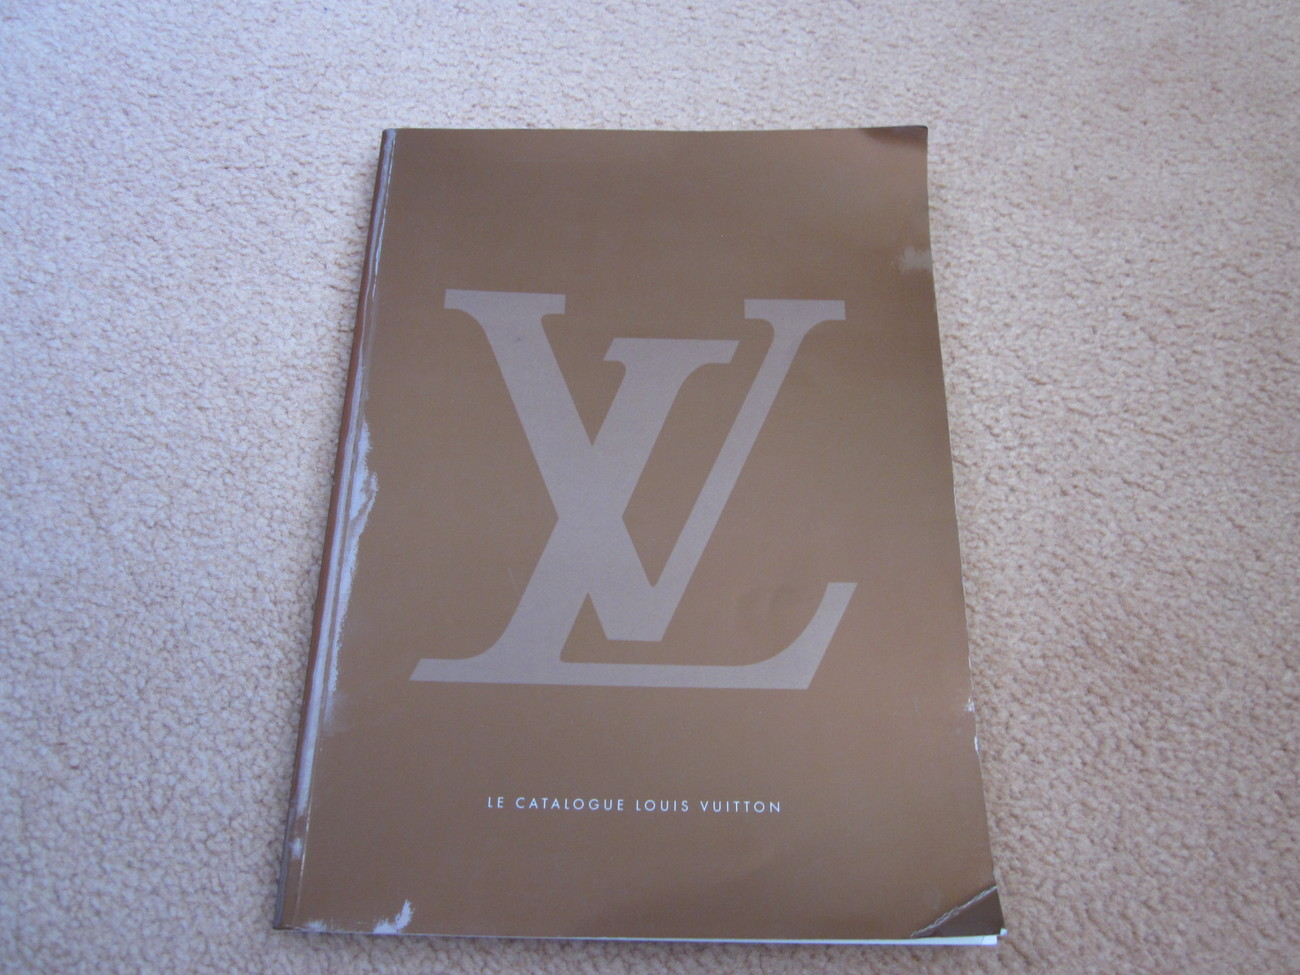 Primary image for Louis Vuitton Catalog - copyright 2002